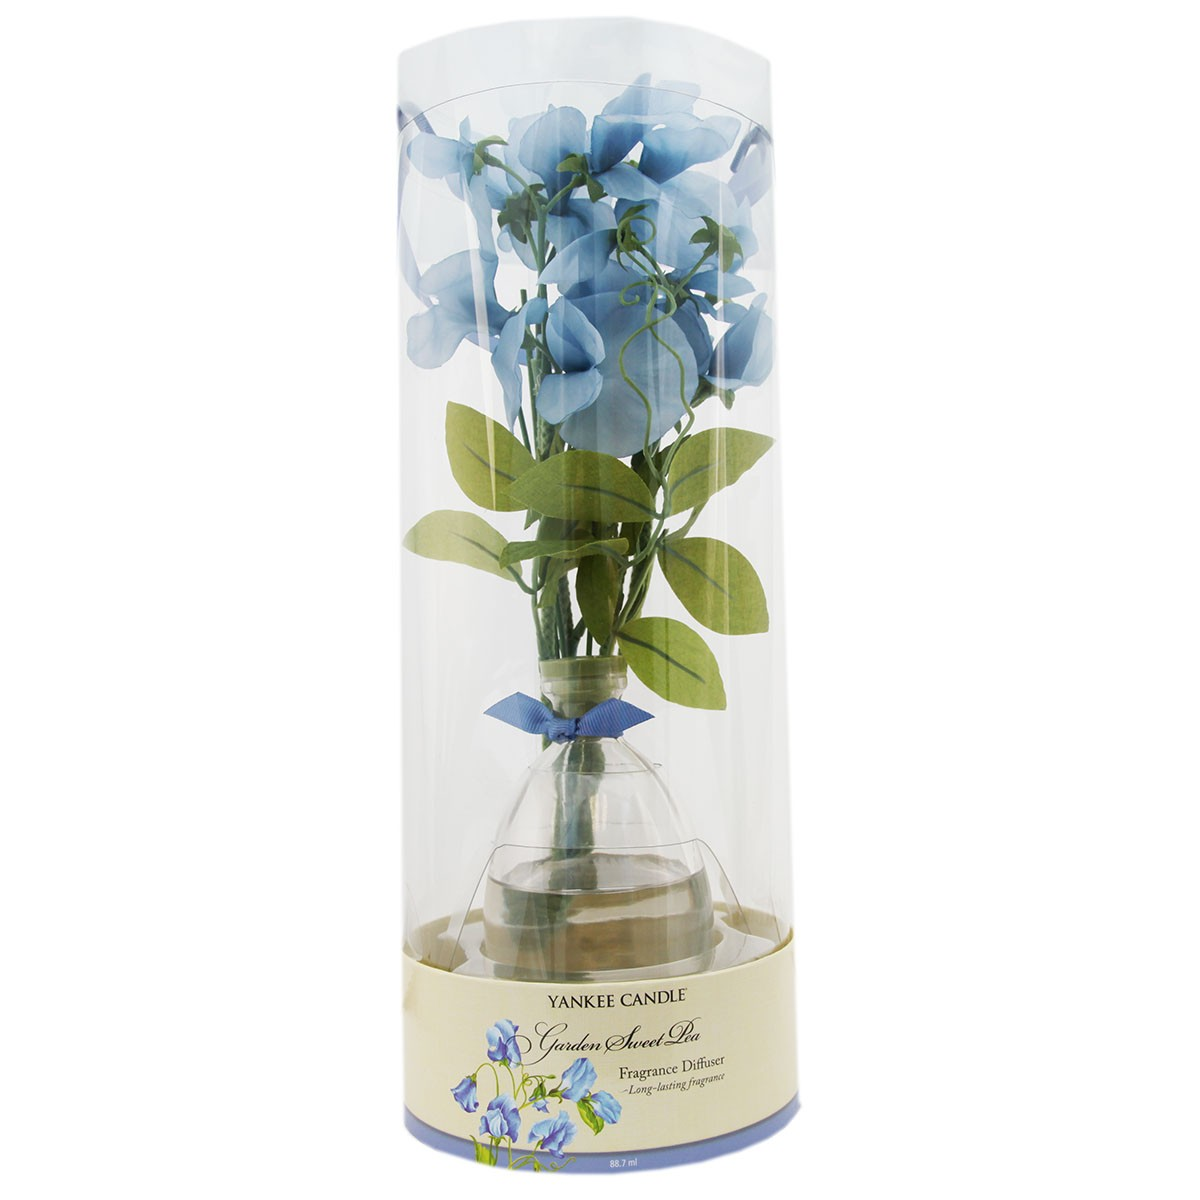 Yankee Candle Garden Sweet Pea Fragrance Diffuser